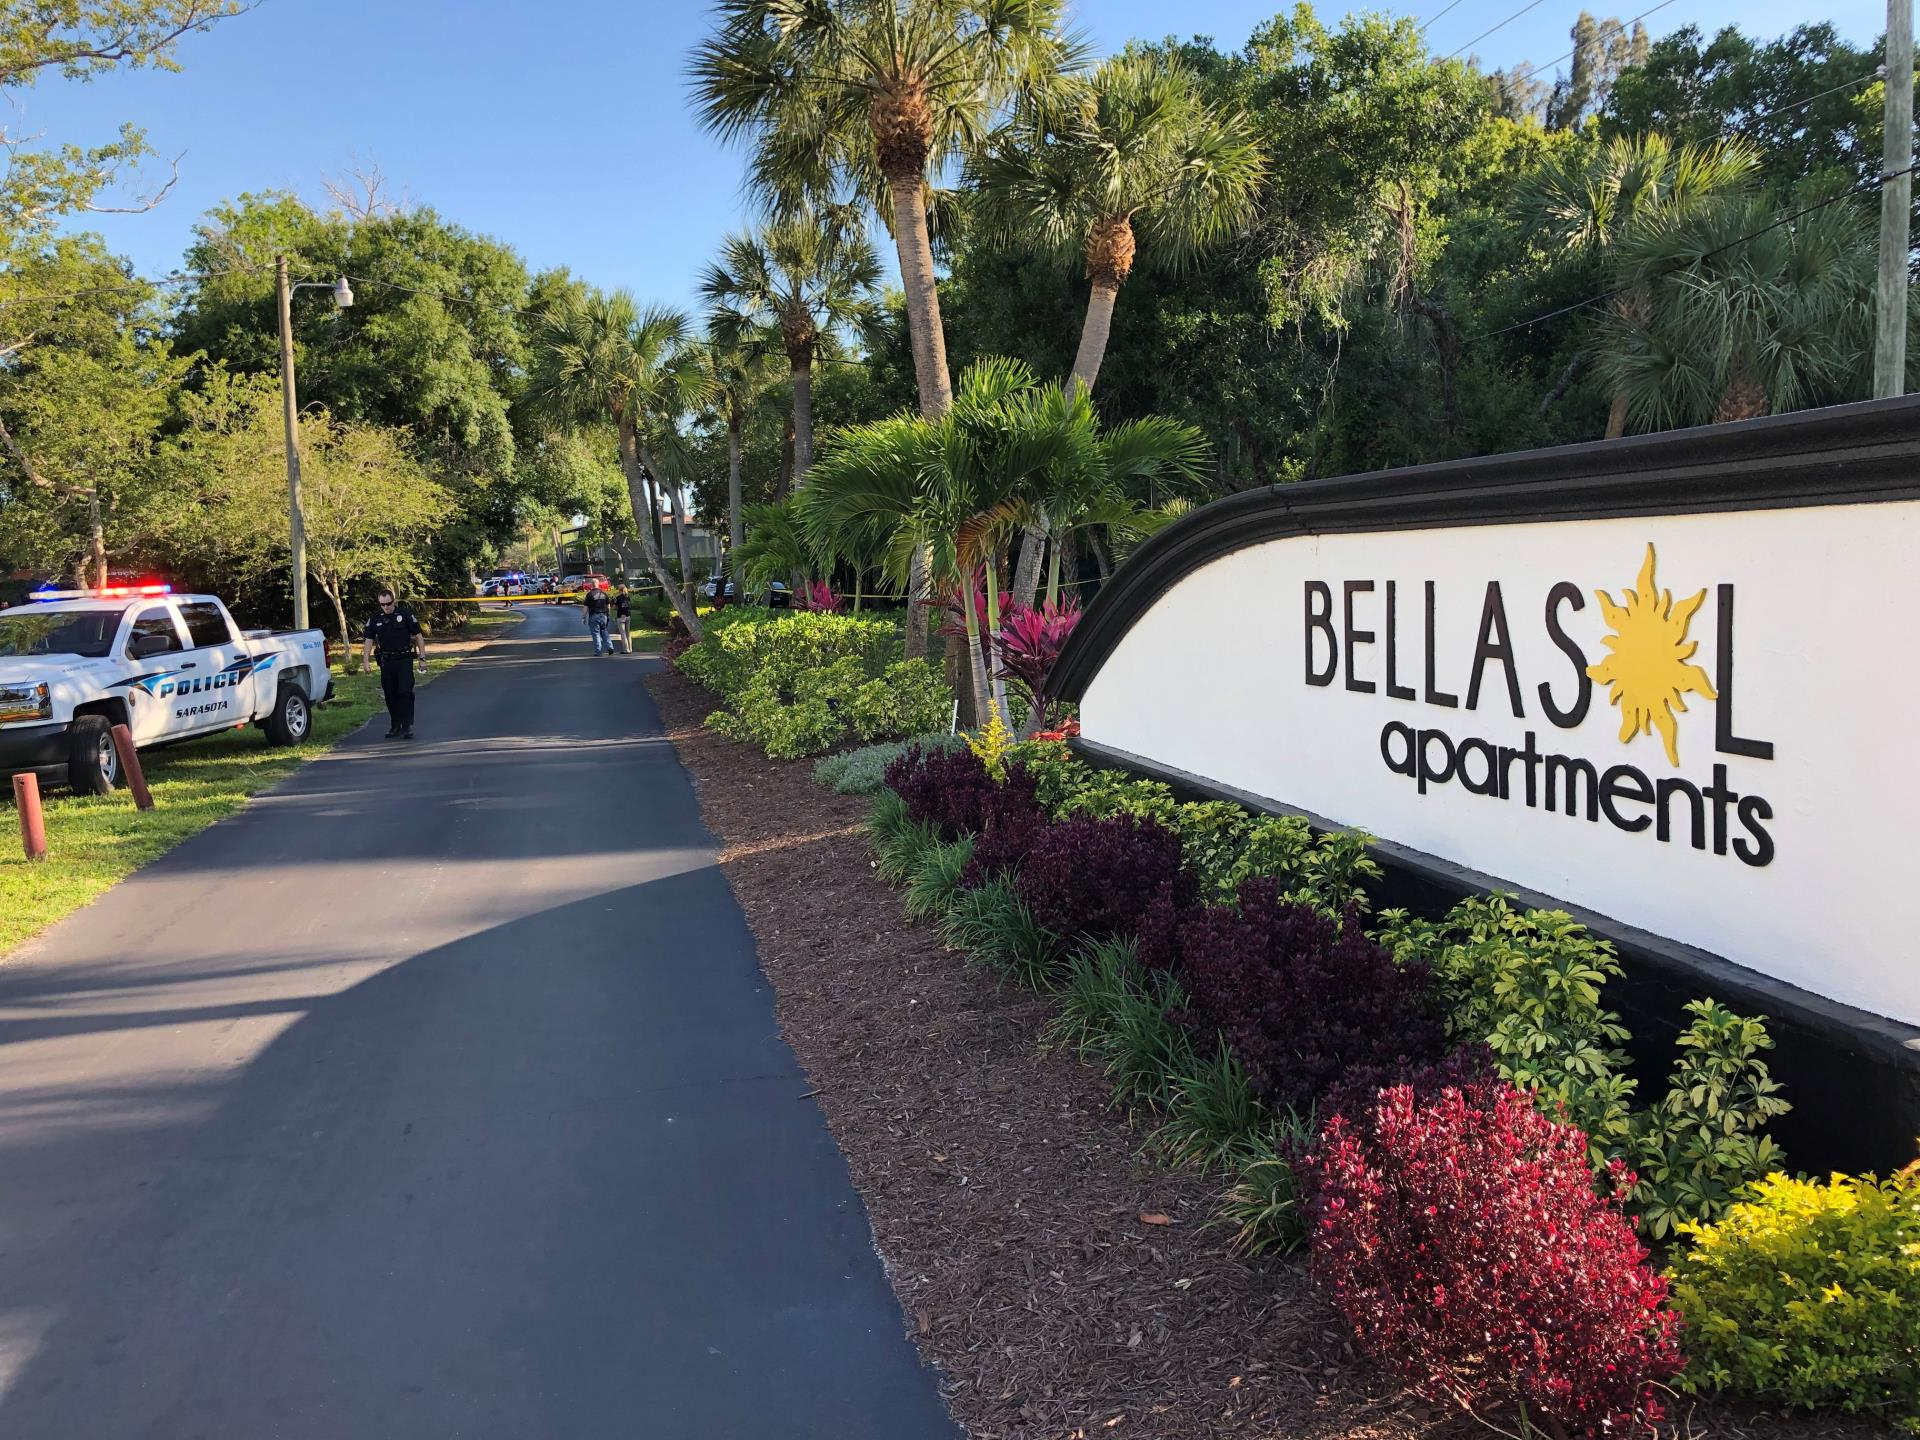 4-24-2019 Bella Sol Apartments